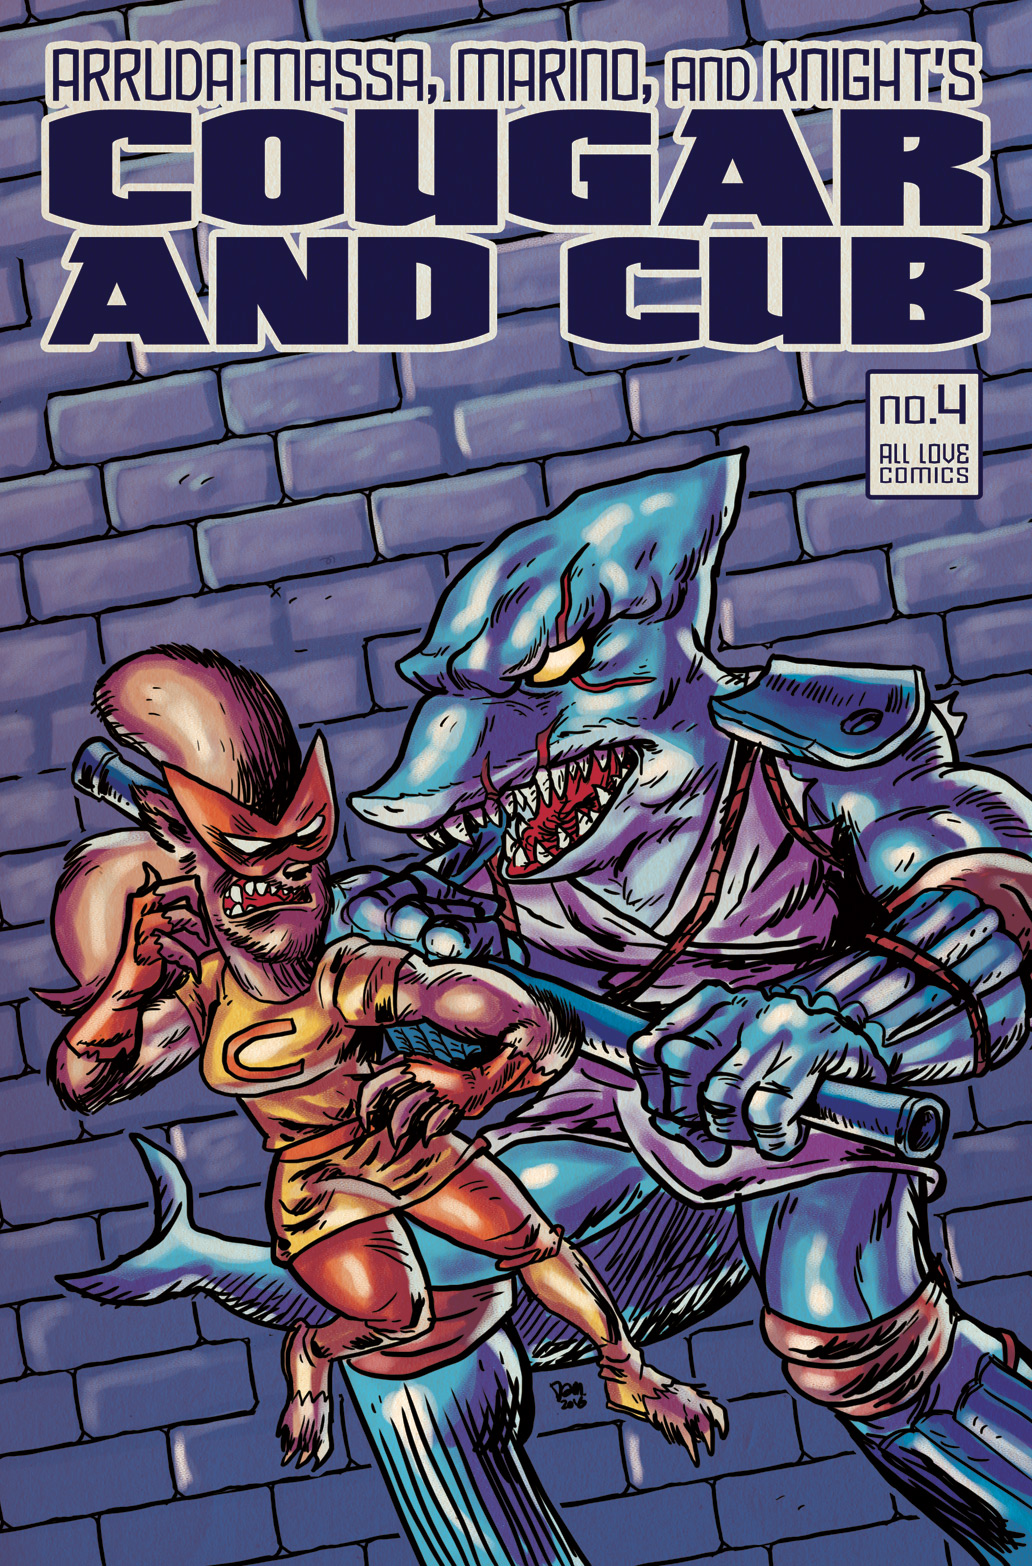 Cougar and Cub #4 flashback cover